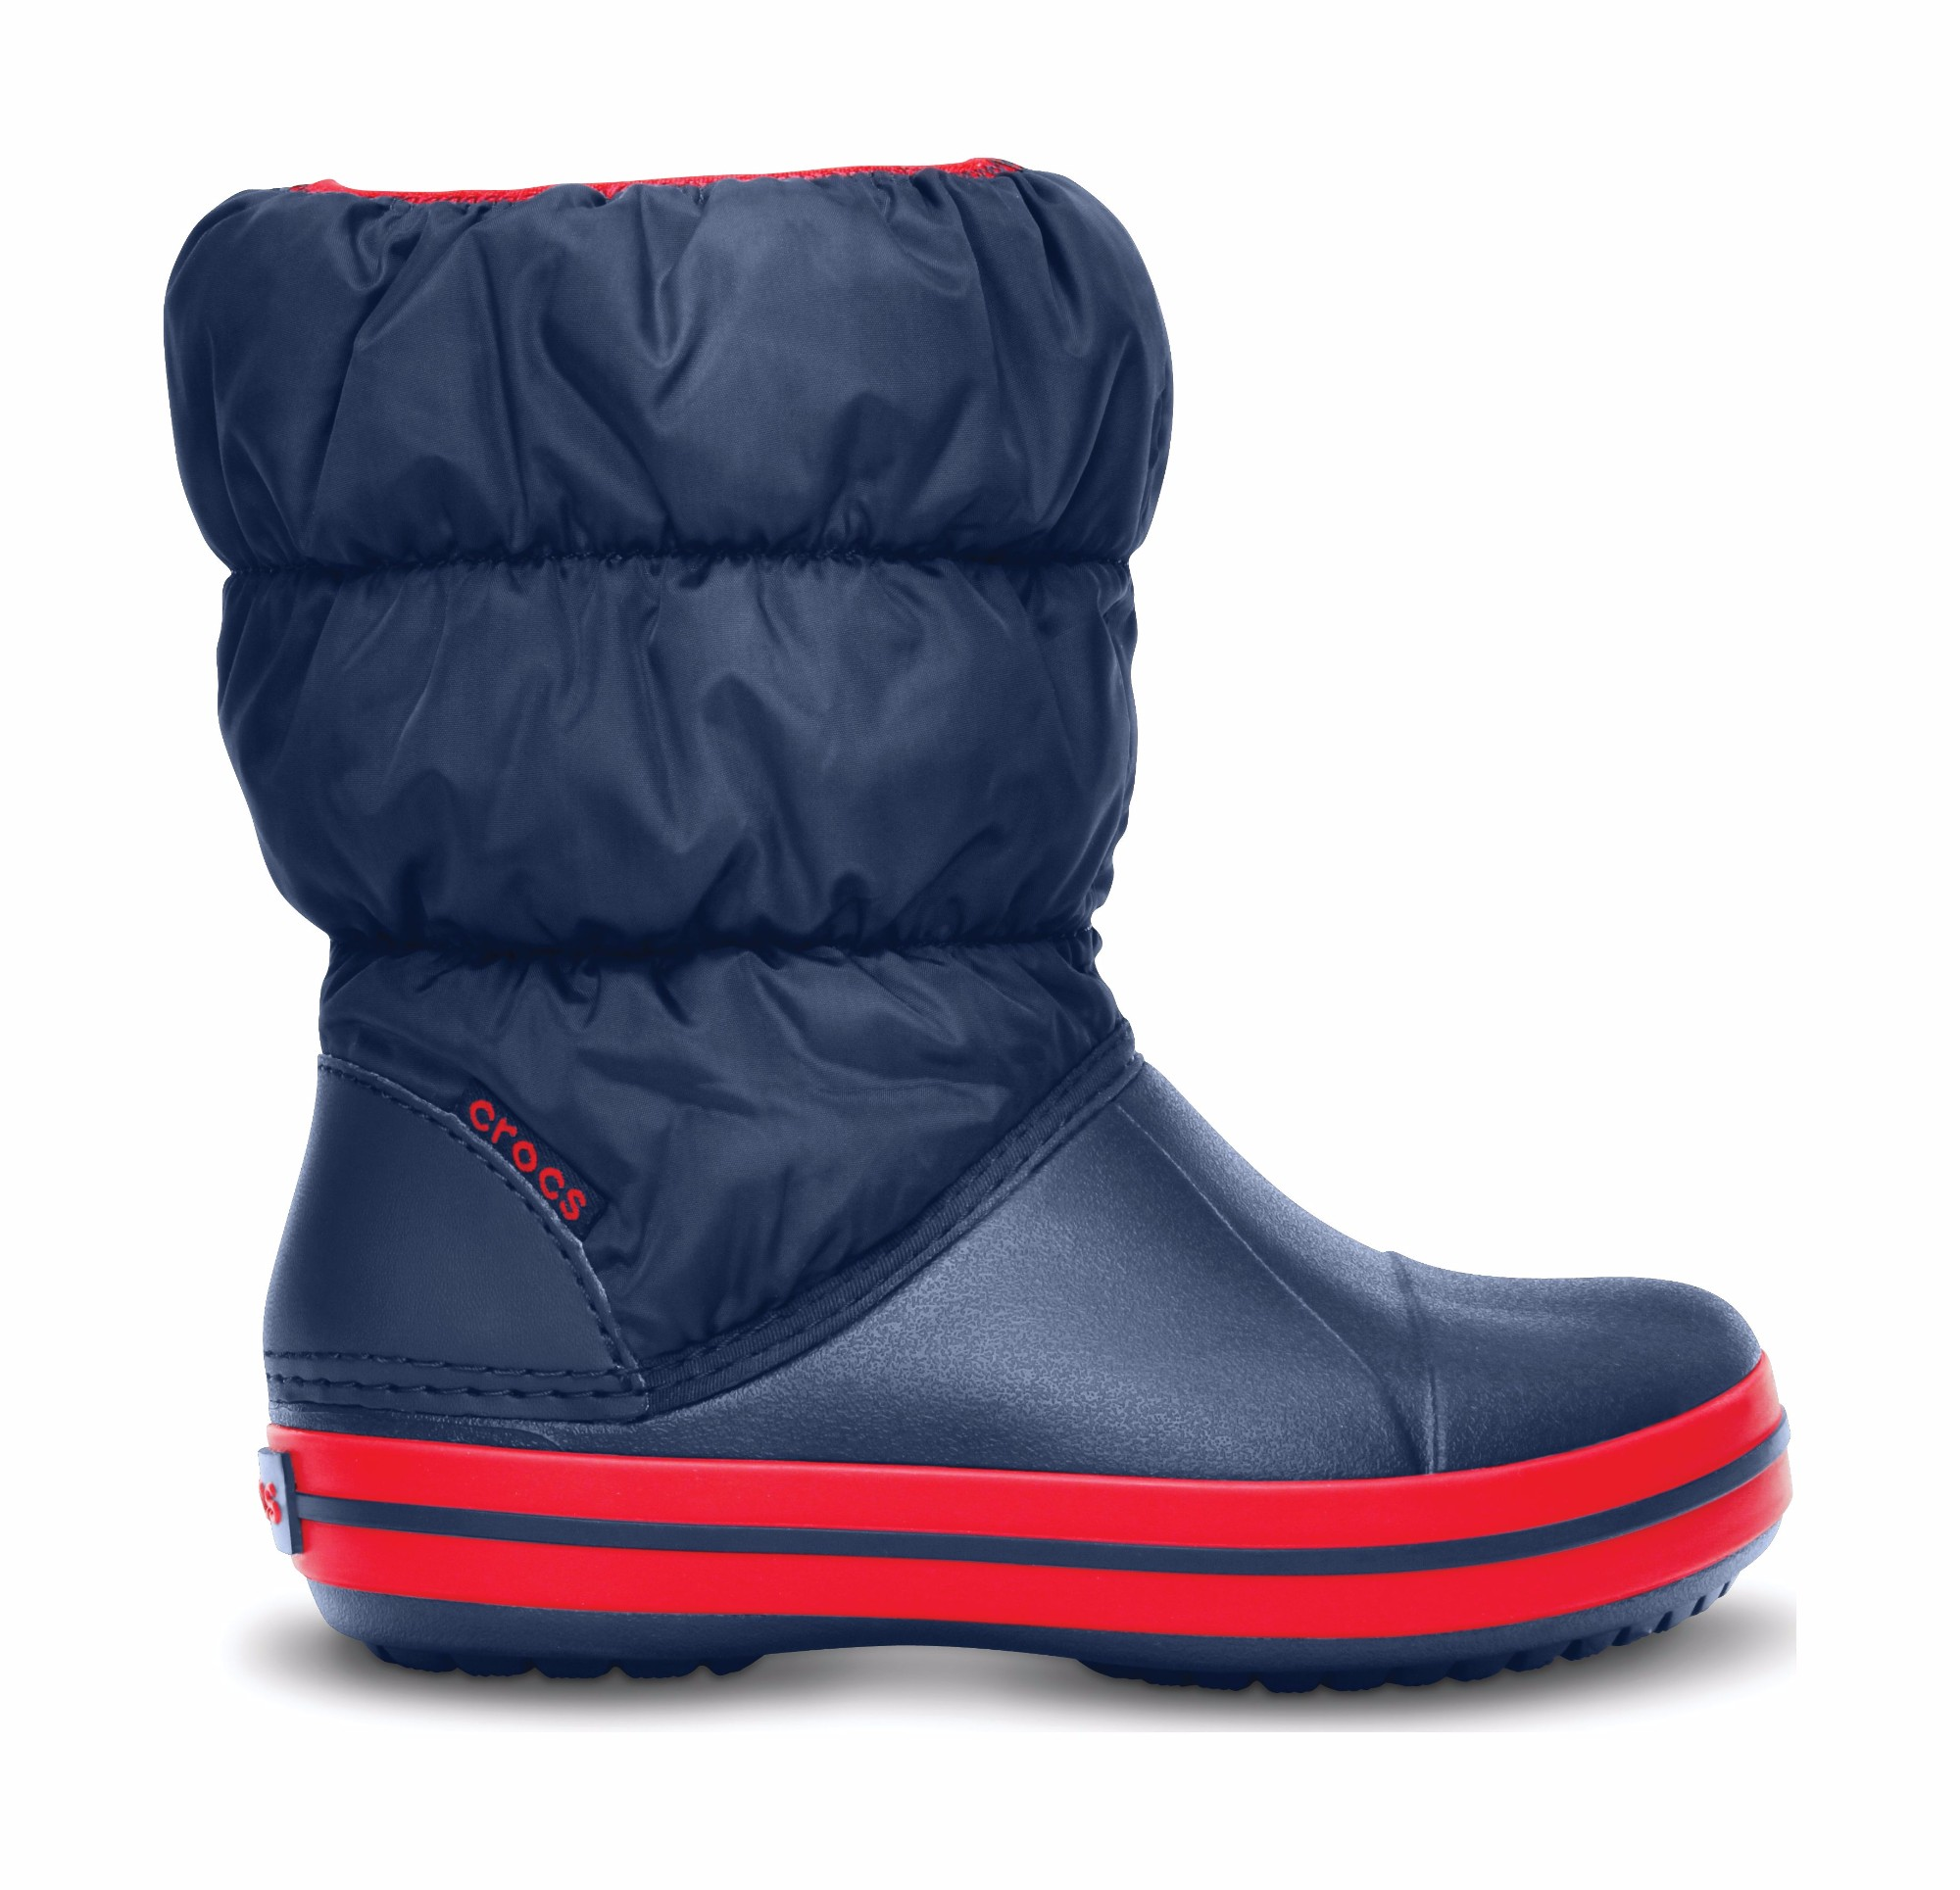 Crocs™ Kids' Winter Puff Boot Dark blue/Red 28